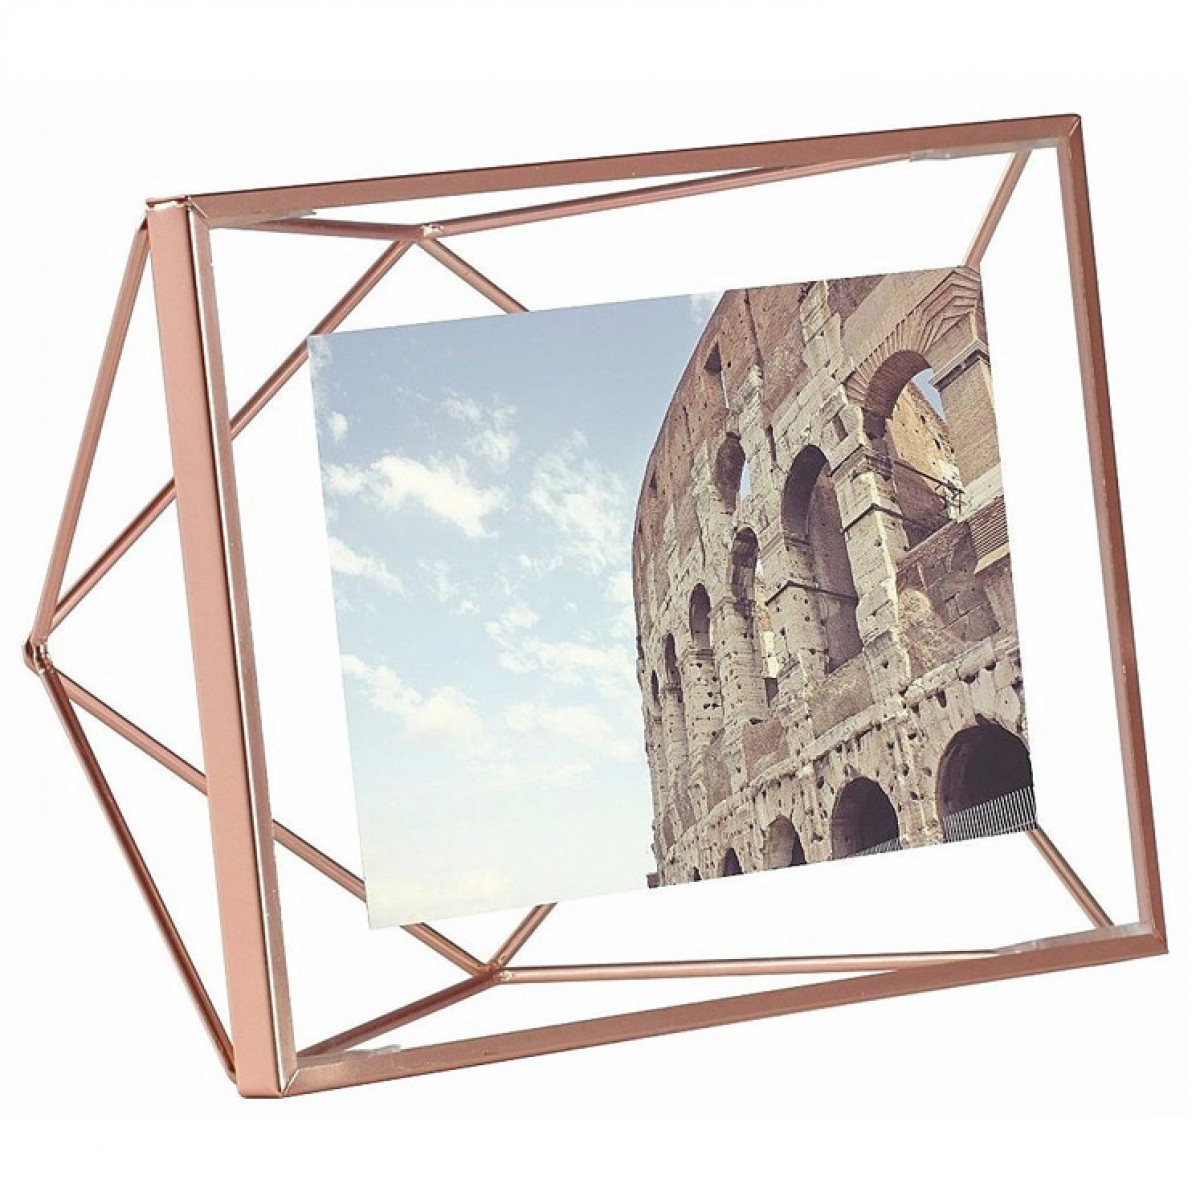 desk photo frames  photo stands  photo display trees - umbra prisma photo frame x  copper  wire picture frame